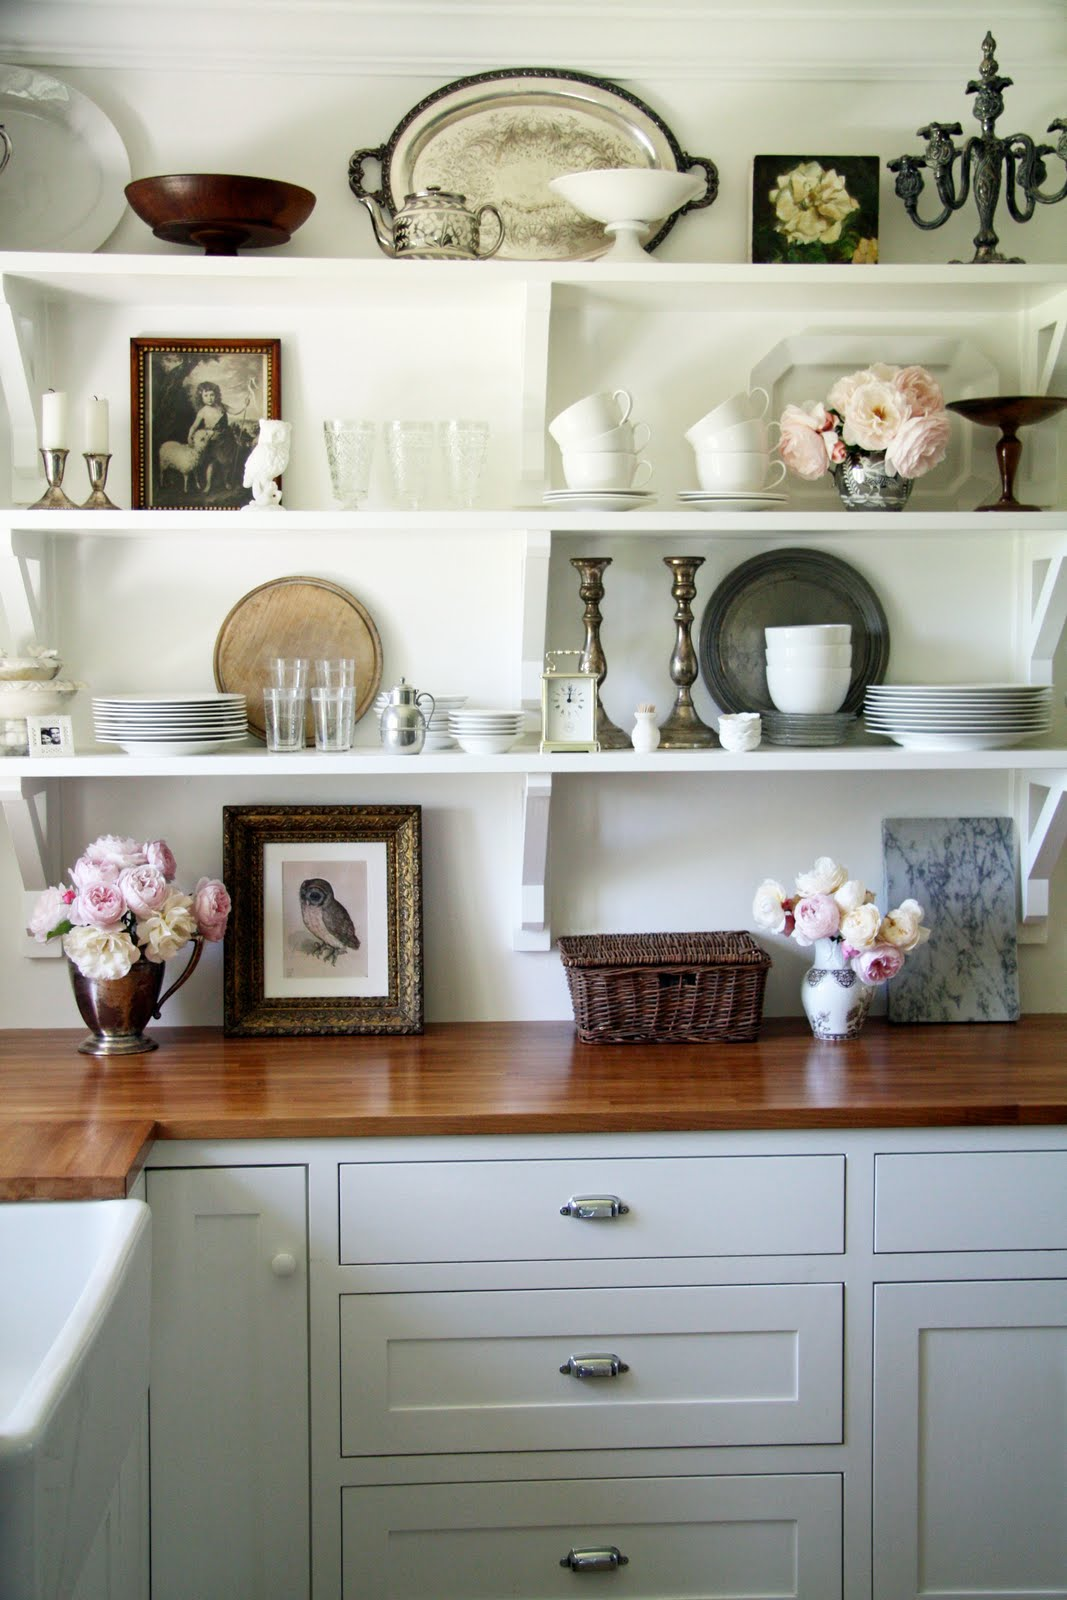 Heir and Space White shelves in the kitchen